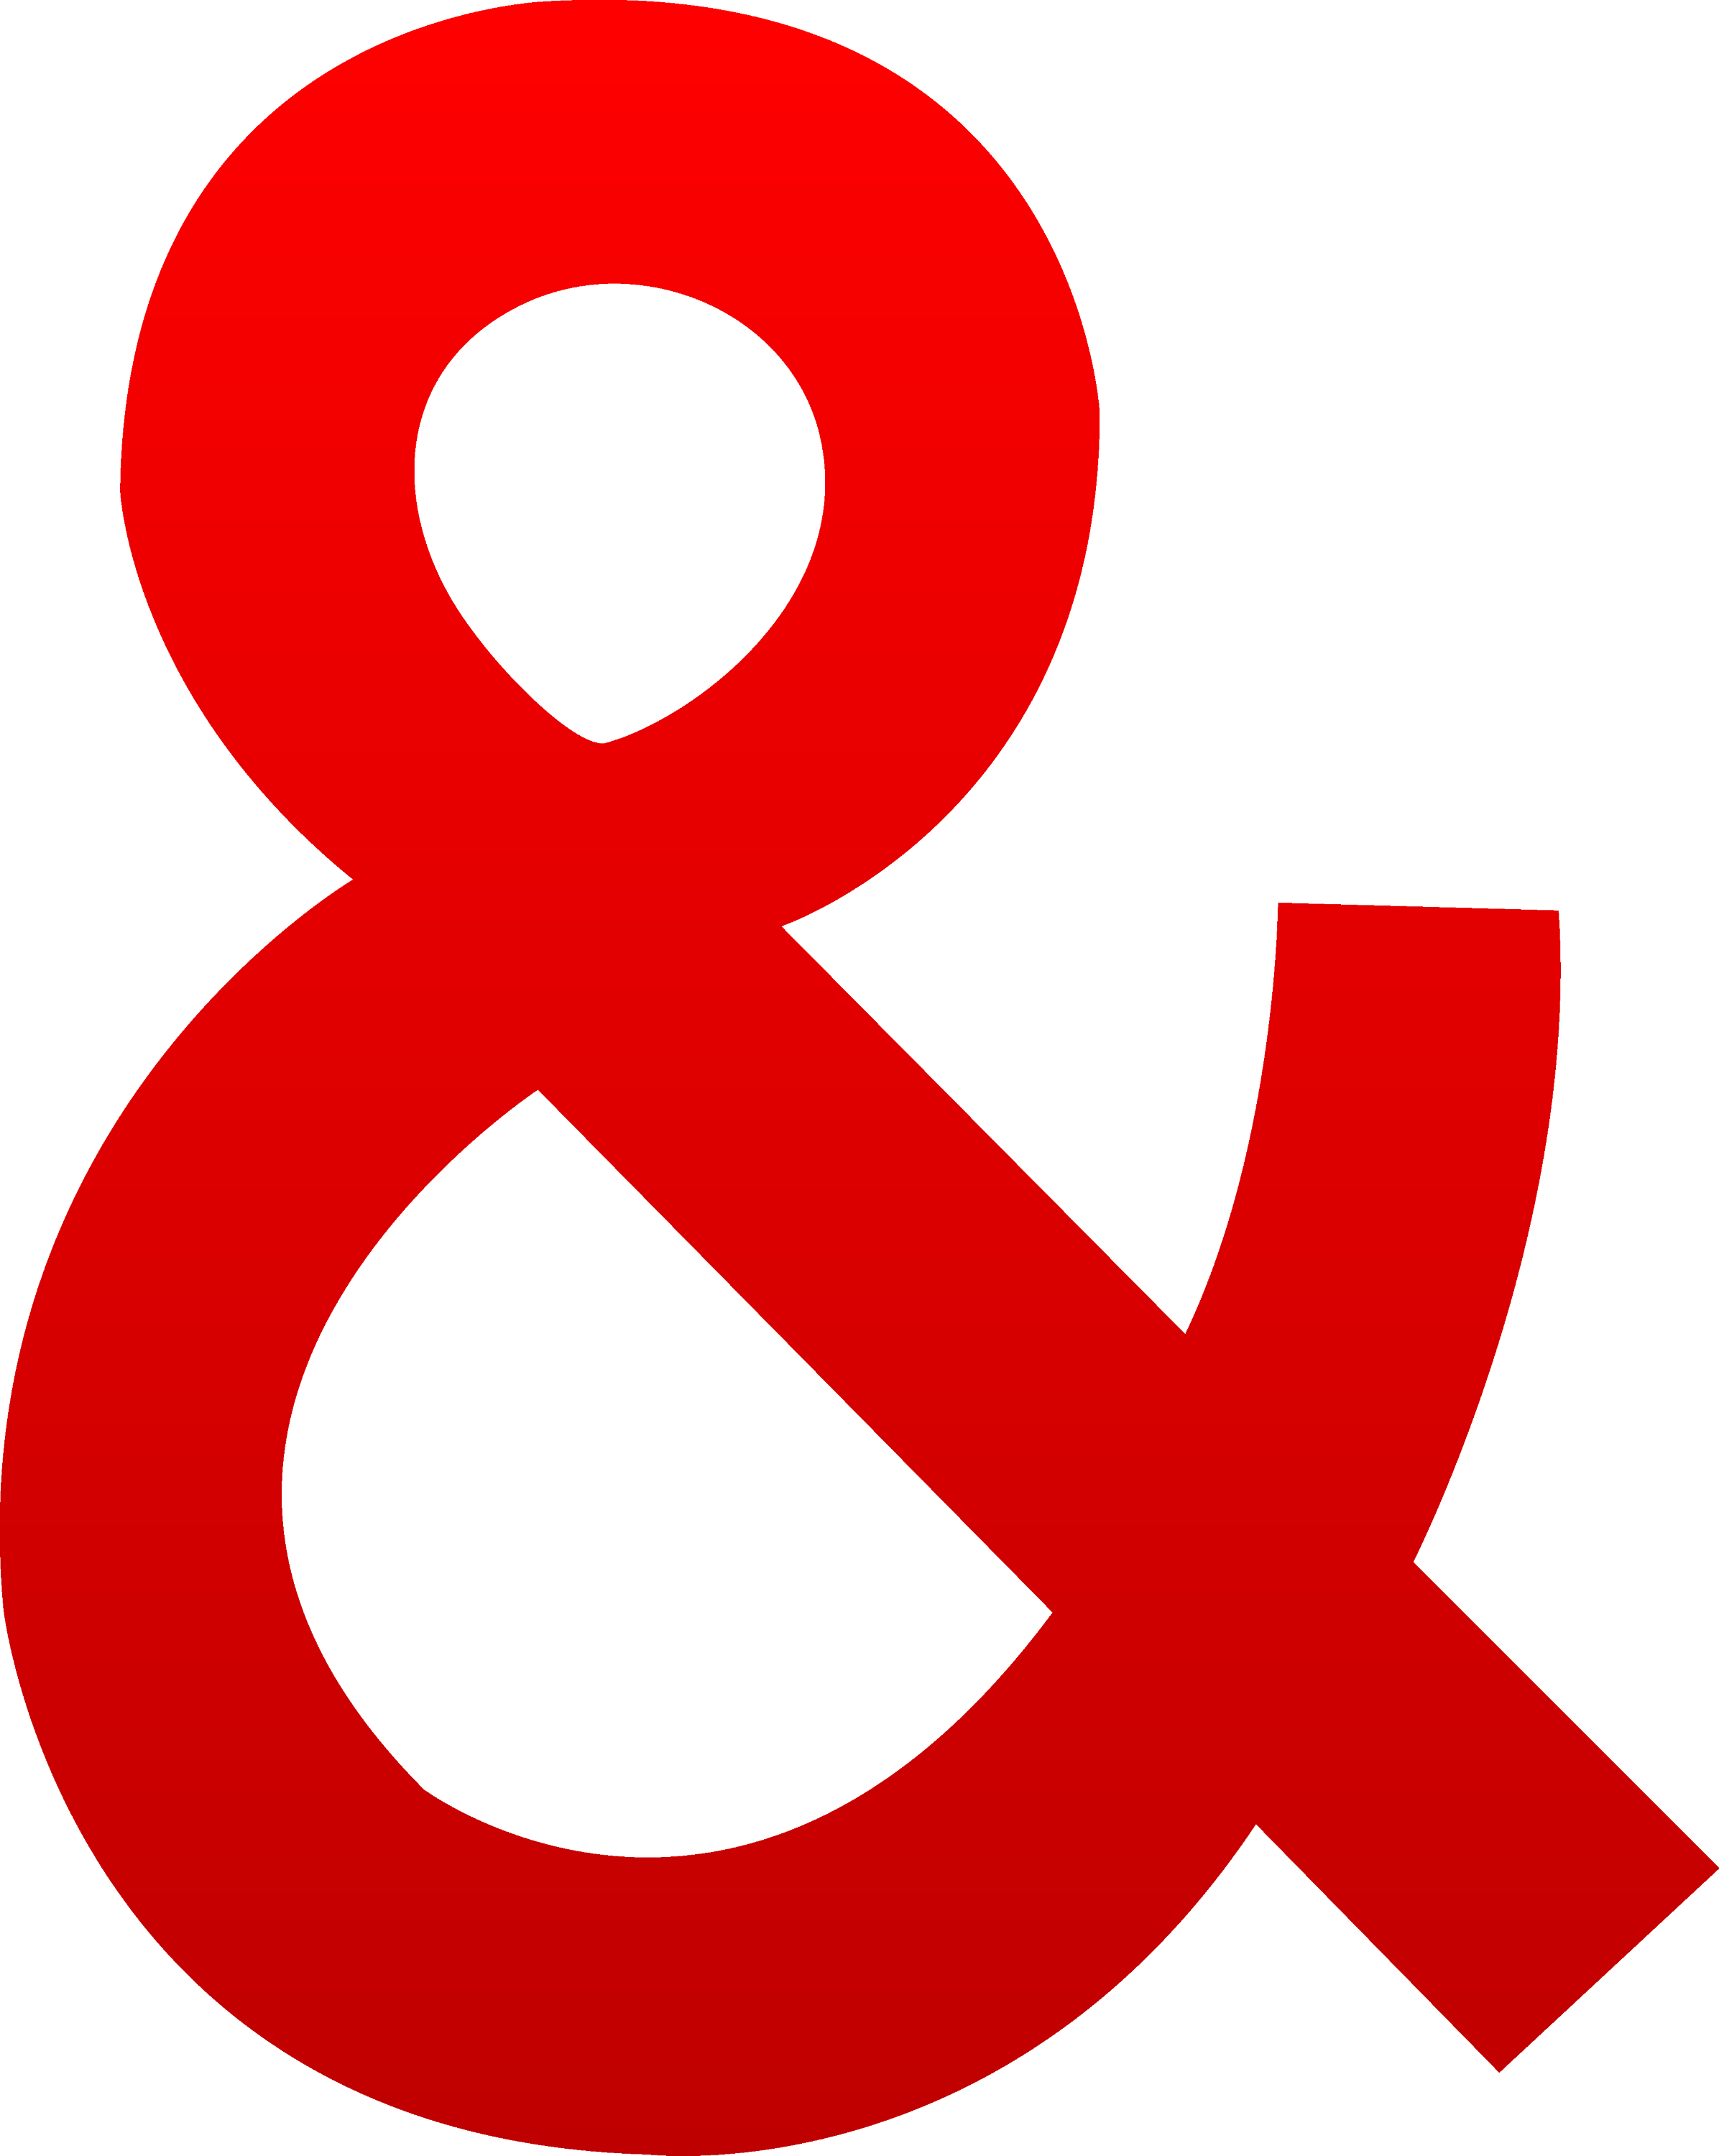 Red Ampersand Symbol - Free Clip Art